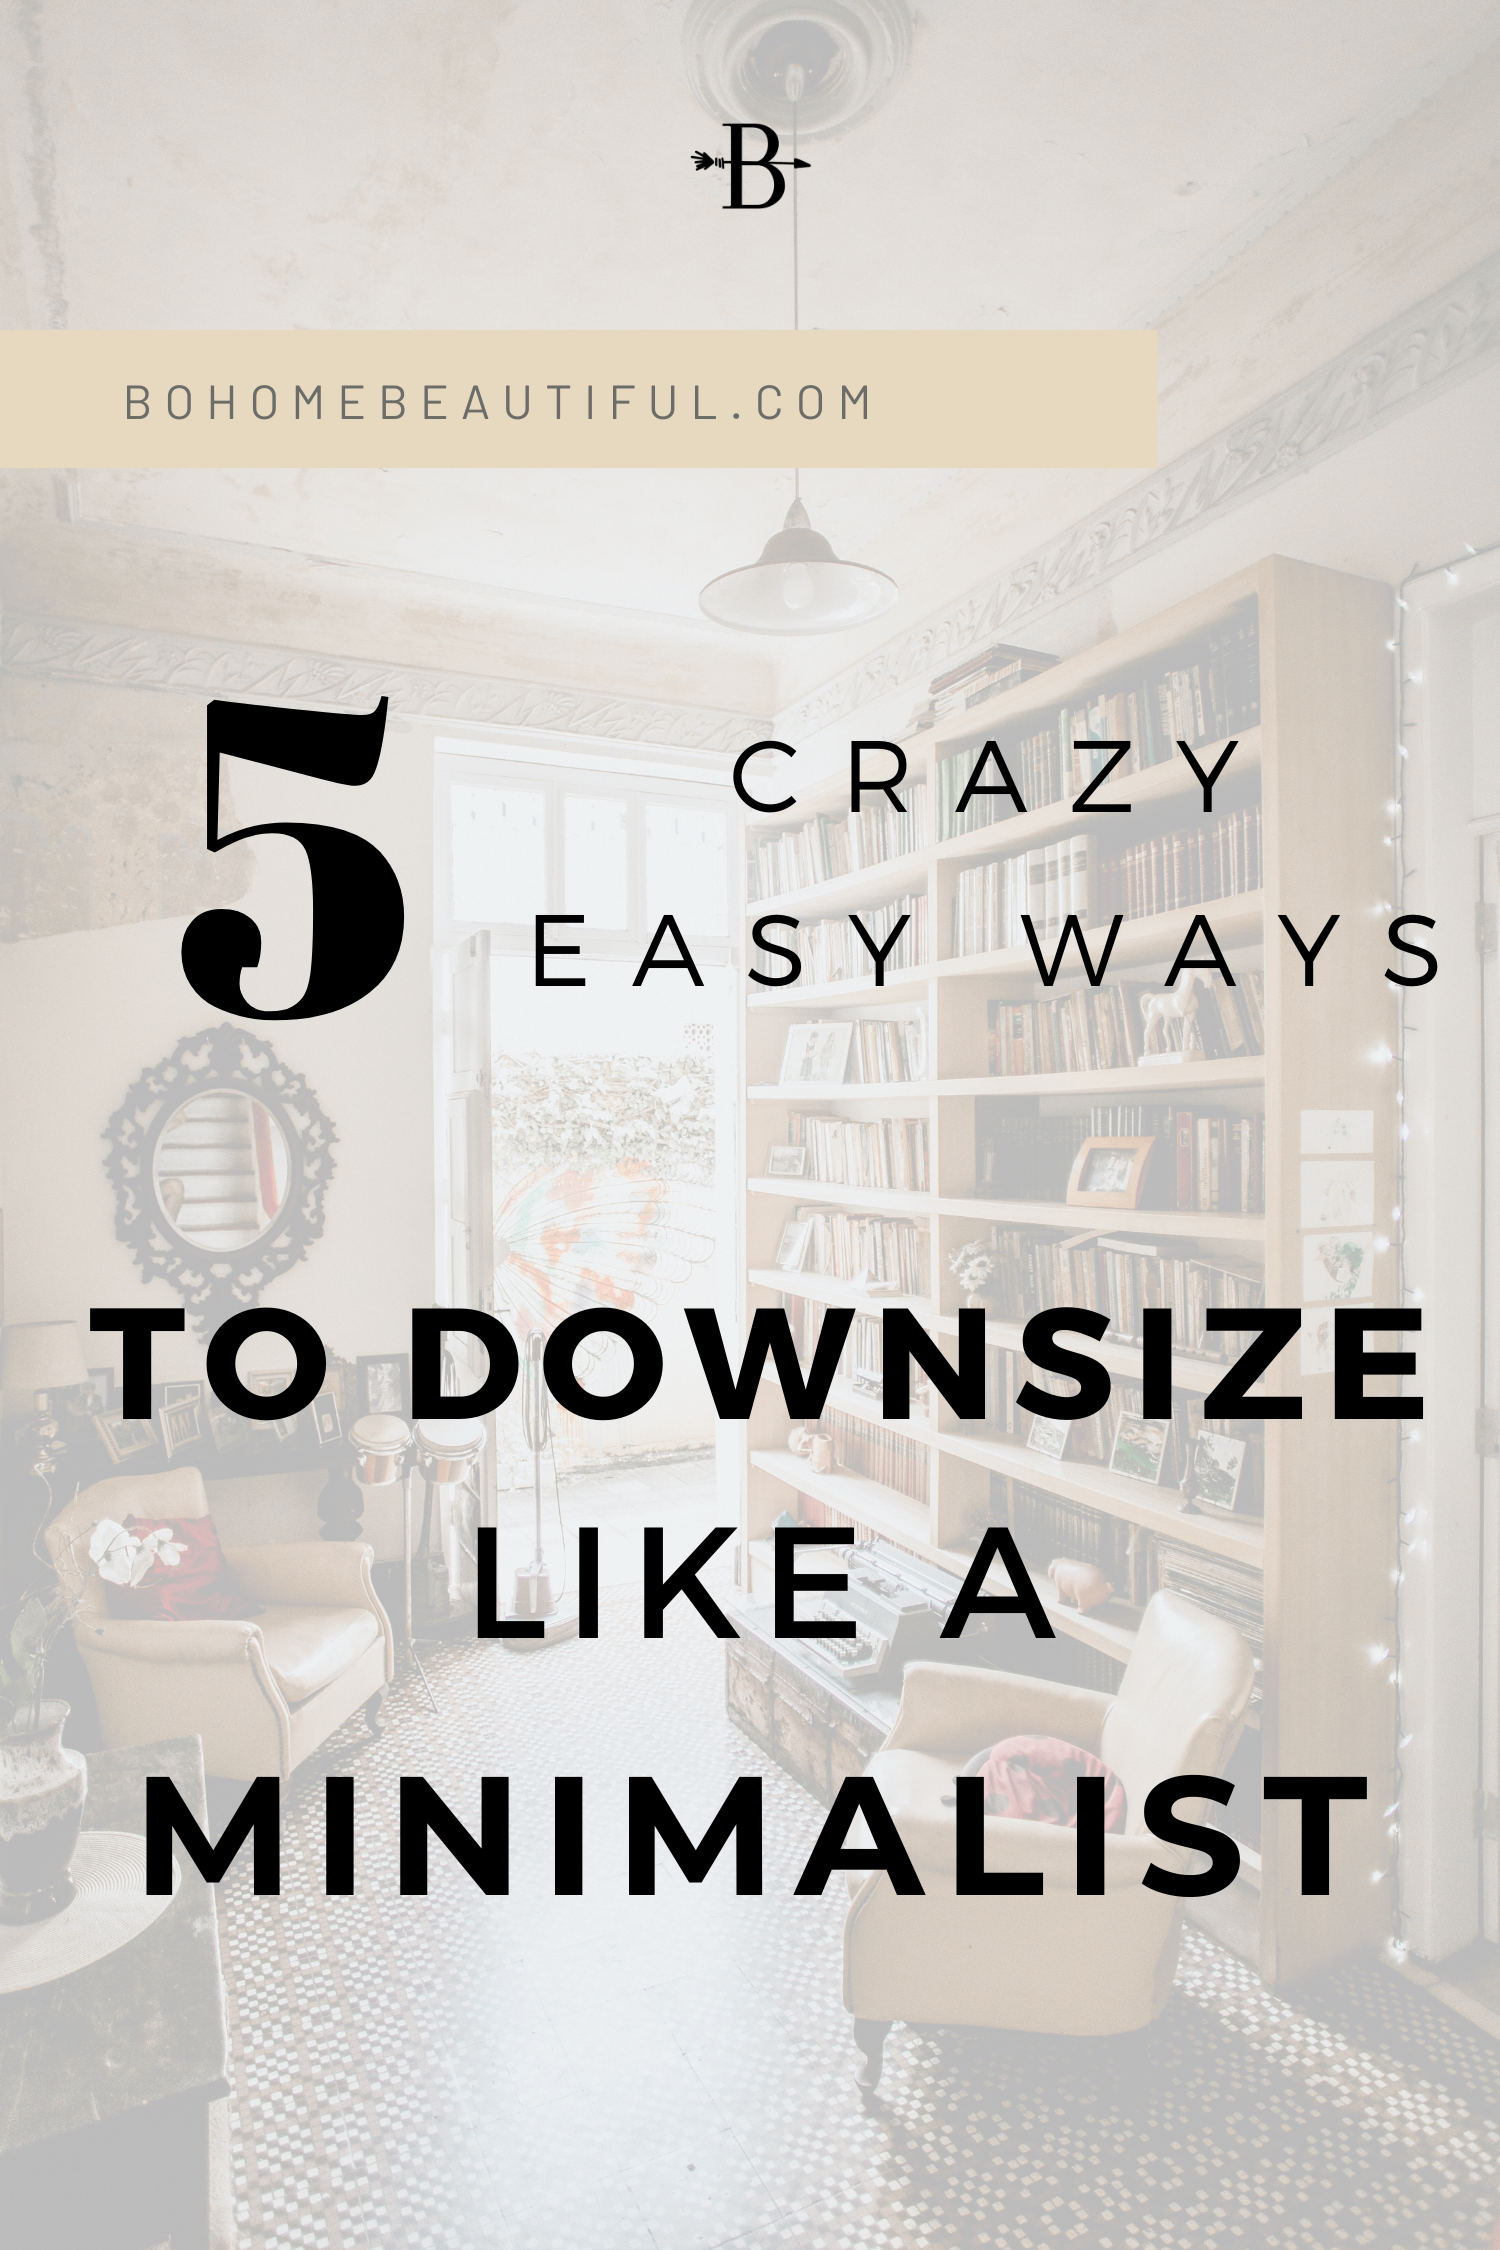 5 ways to downsize like a minimalist